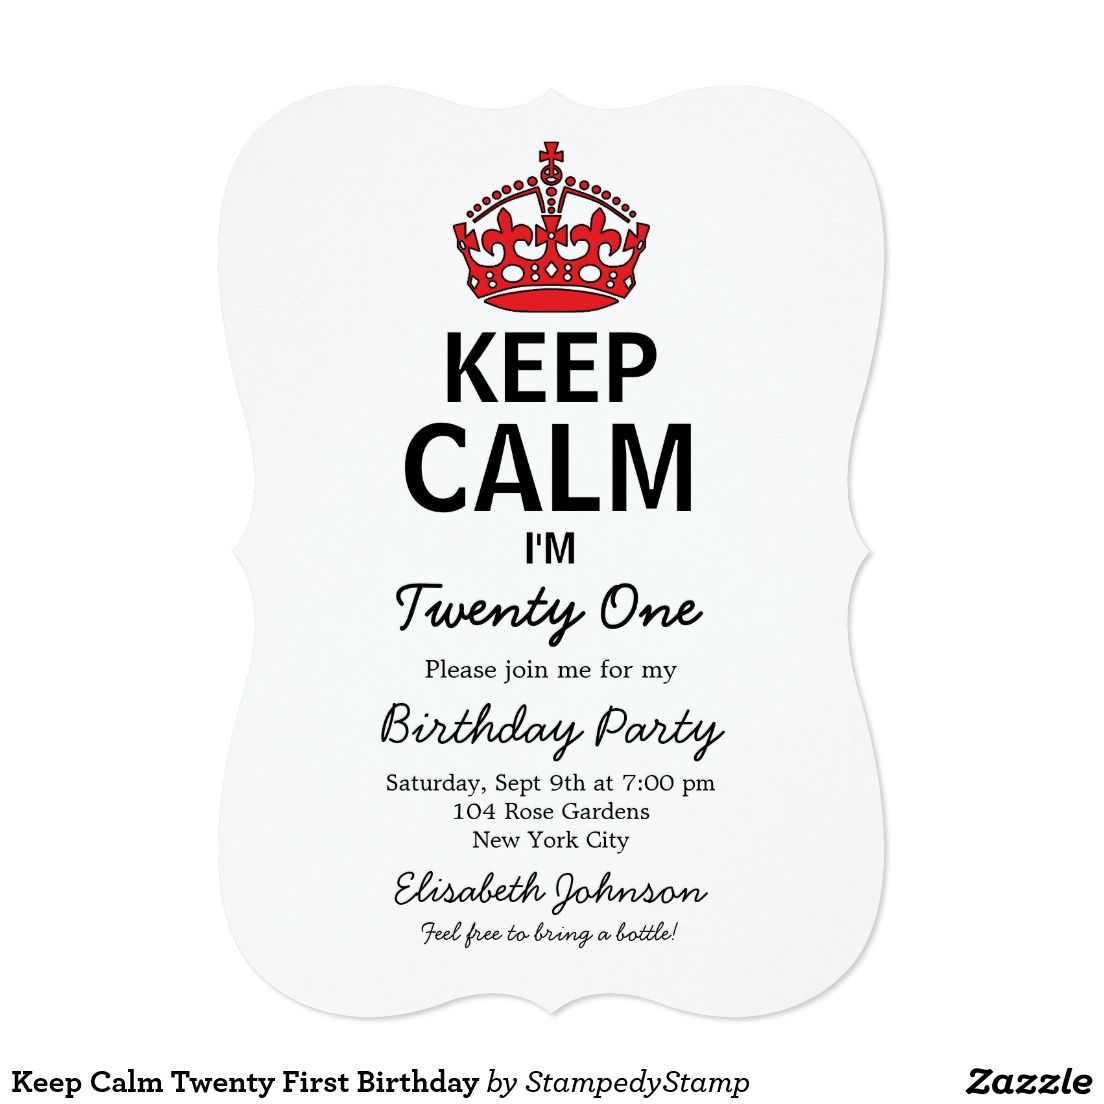 Keep calm twenty first birthday card birthday invitations keep calm eighteenth birthday invitation stopboris Images